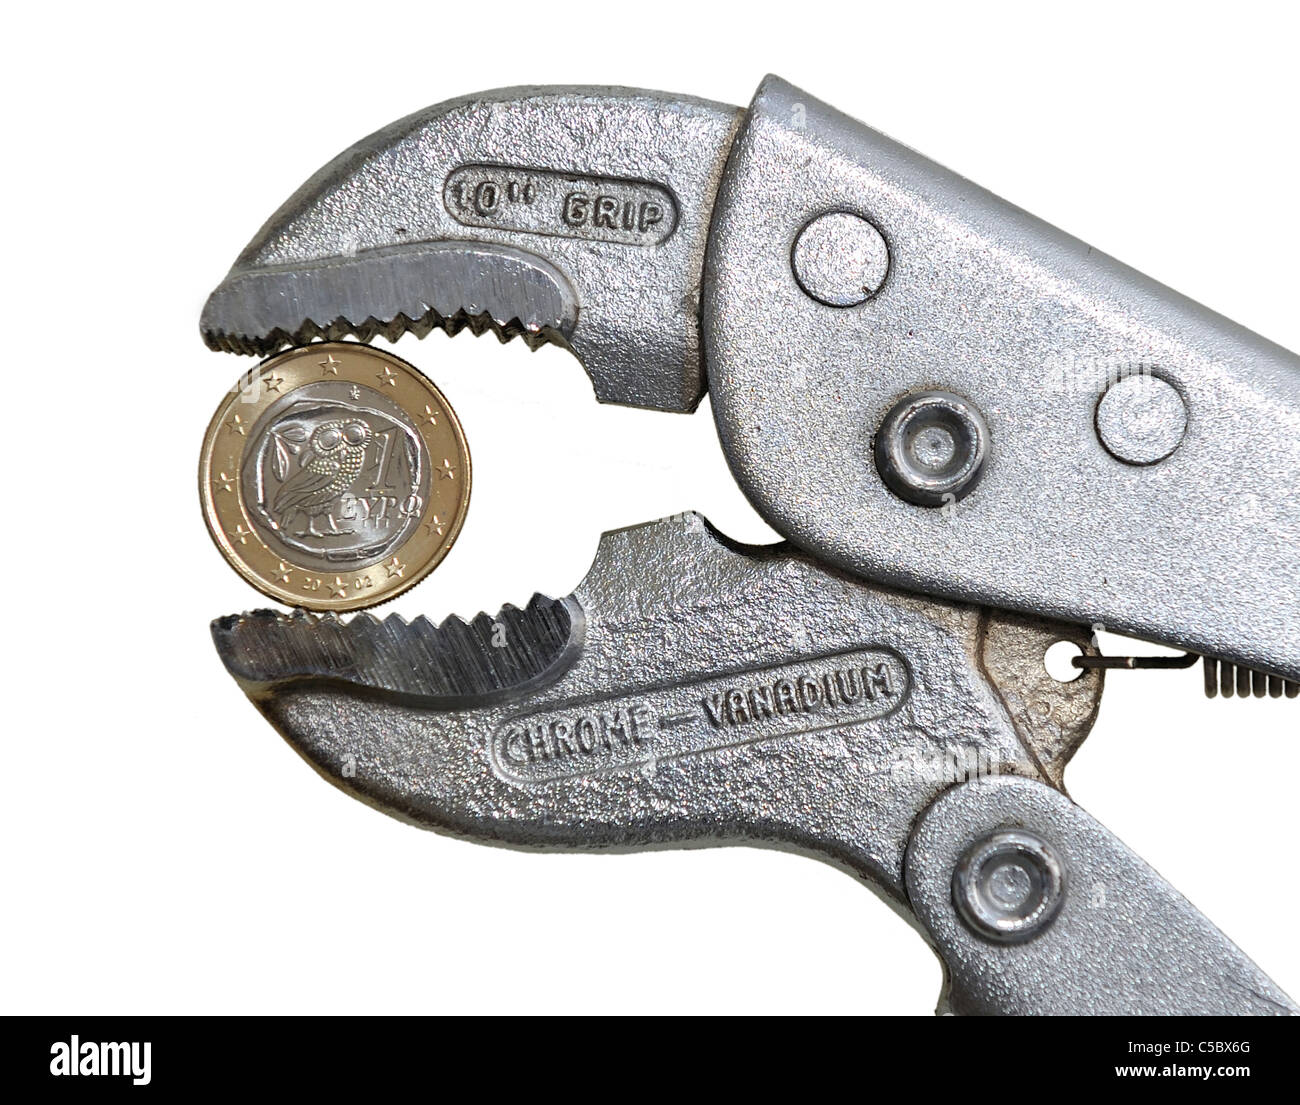 Euro Coin in Pliers - Stock Image